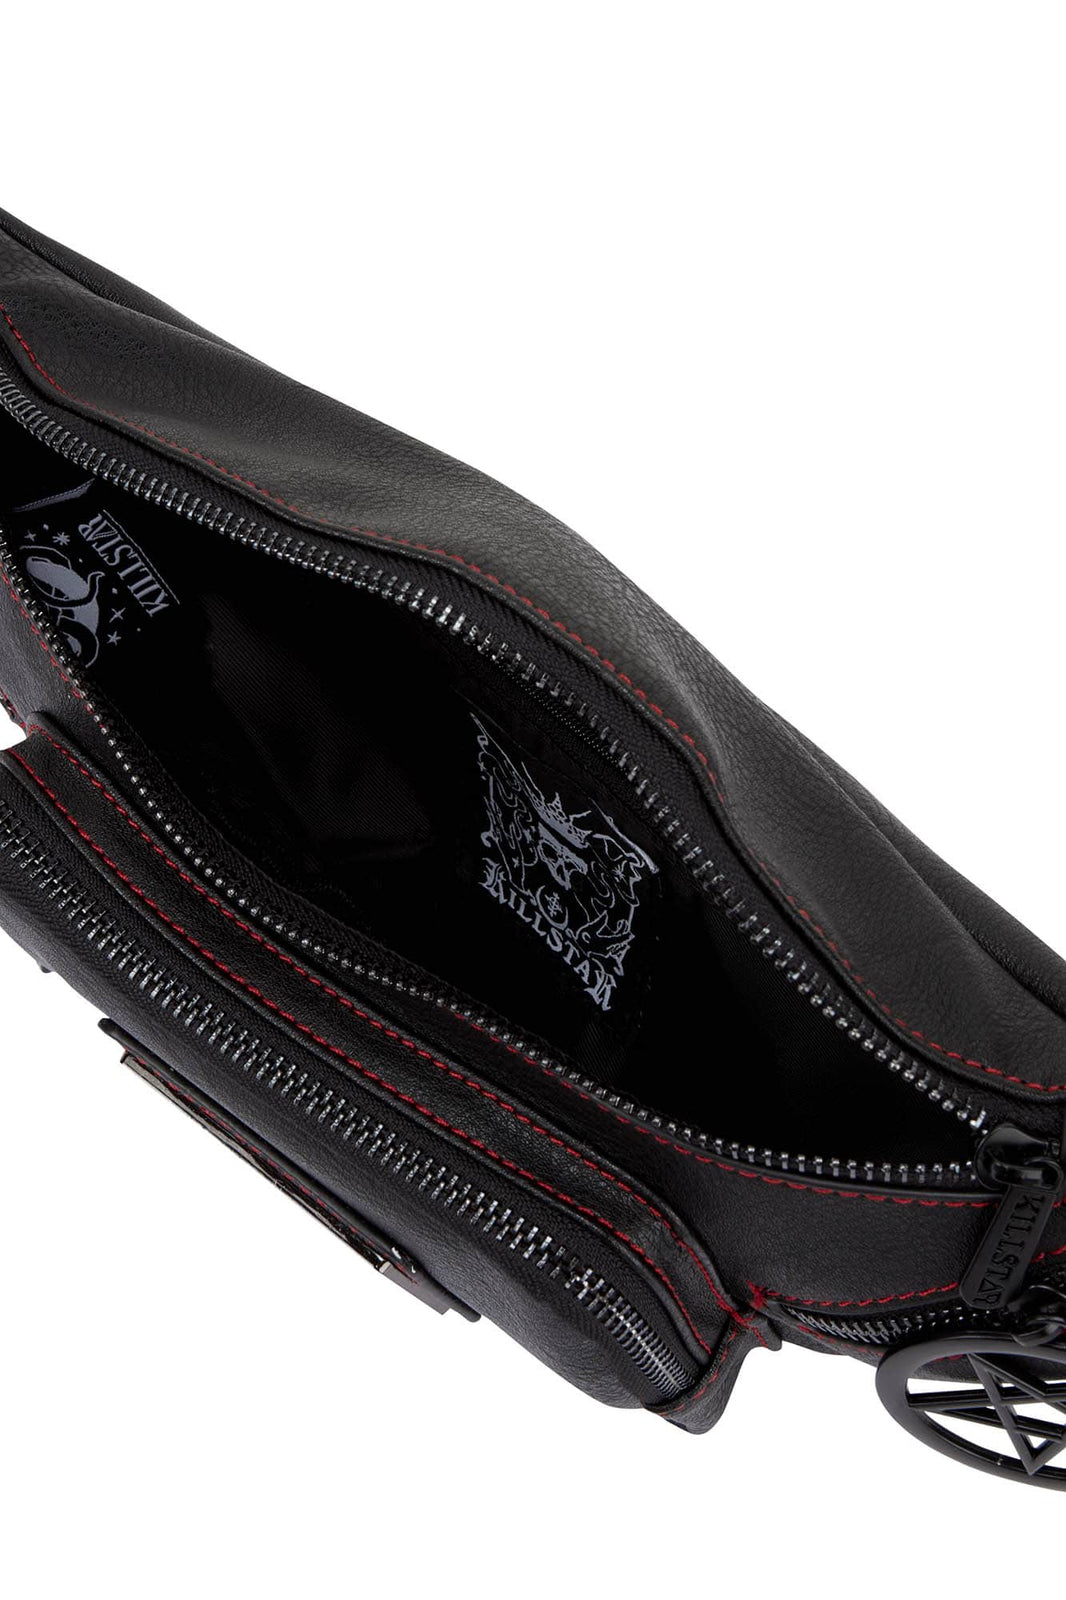 Demonizer Waistbag